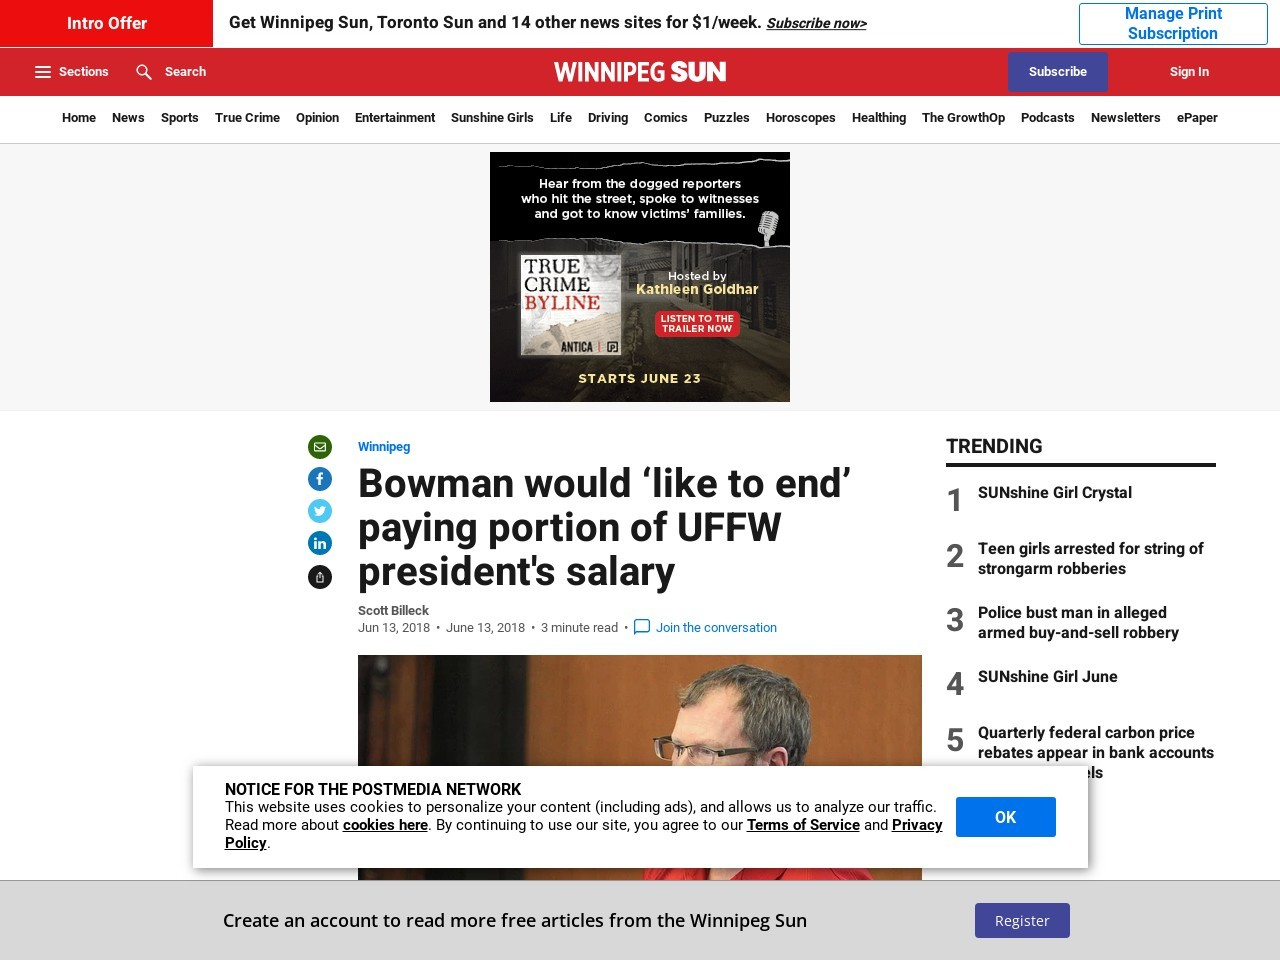 Bowman would 'like to end' paying portion of UFFW president's salary